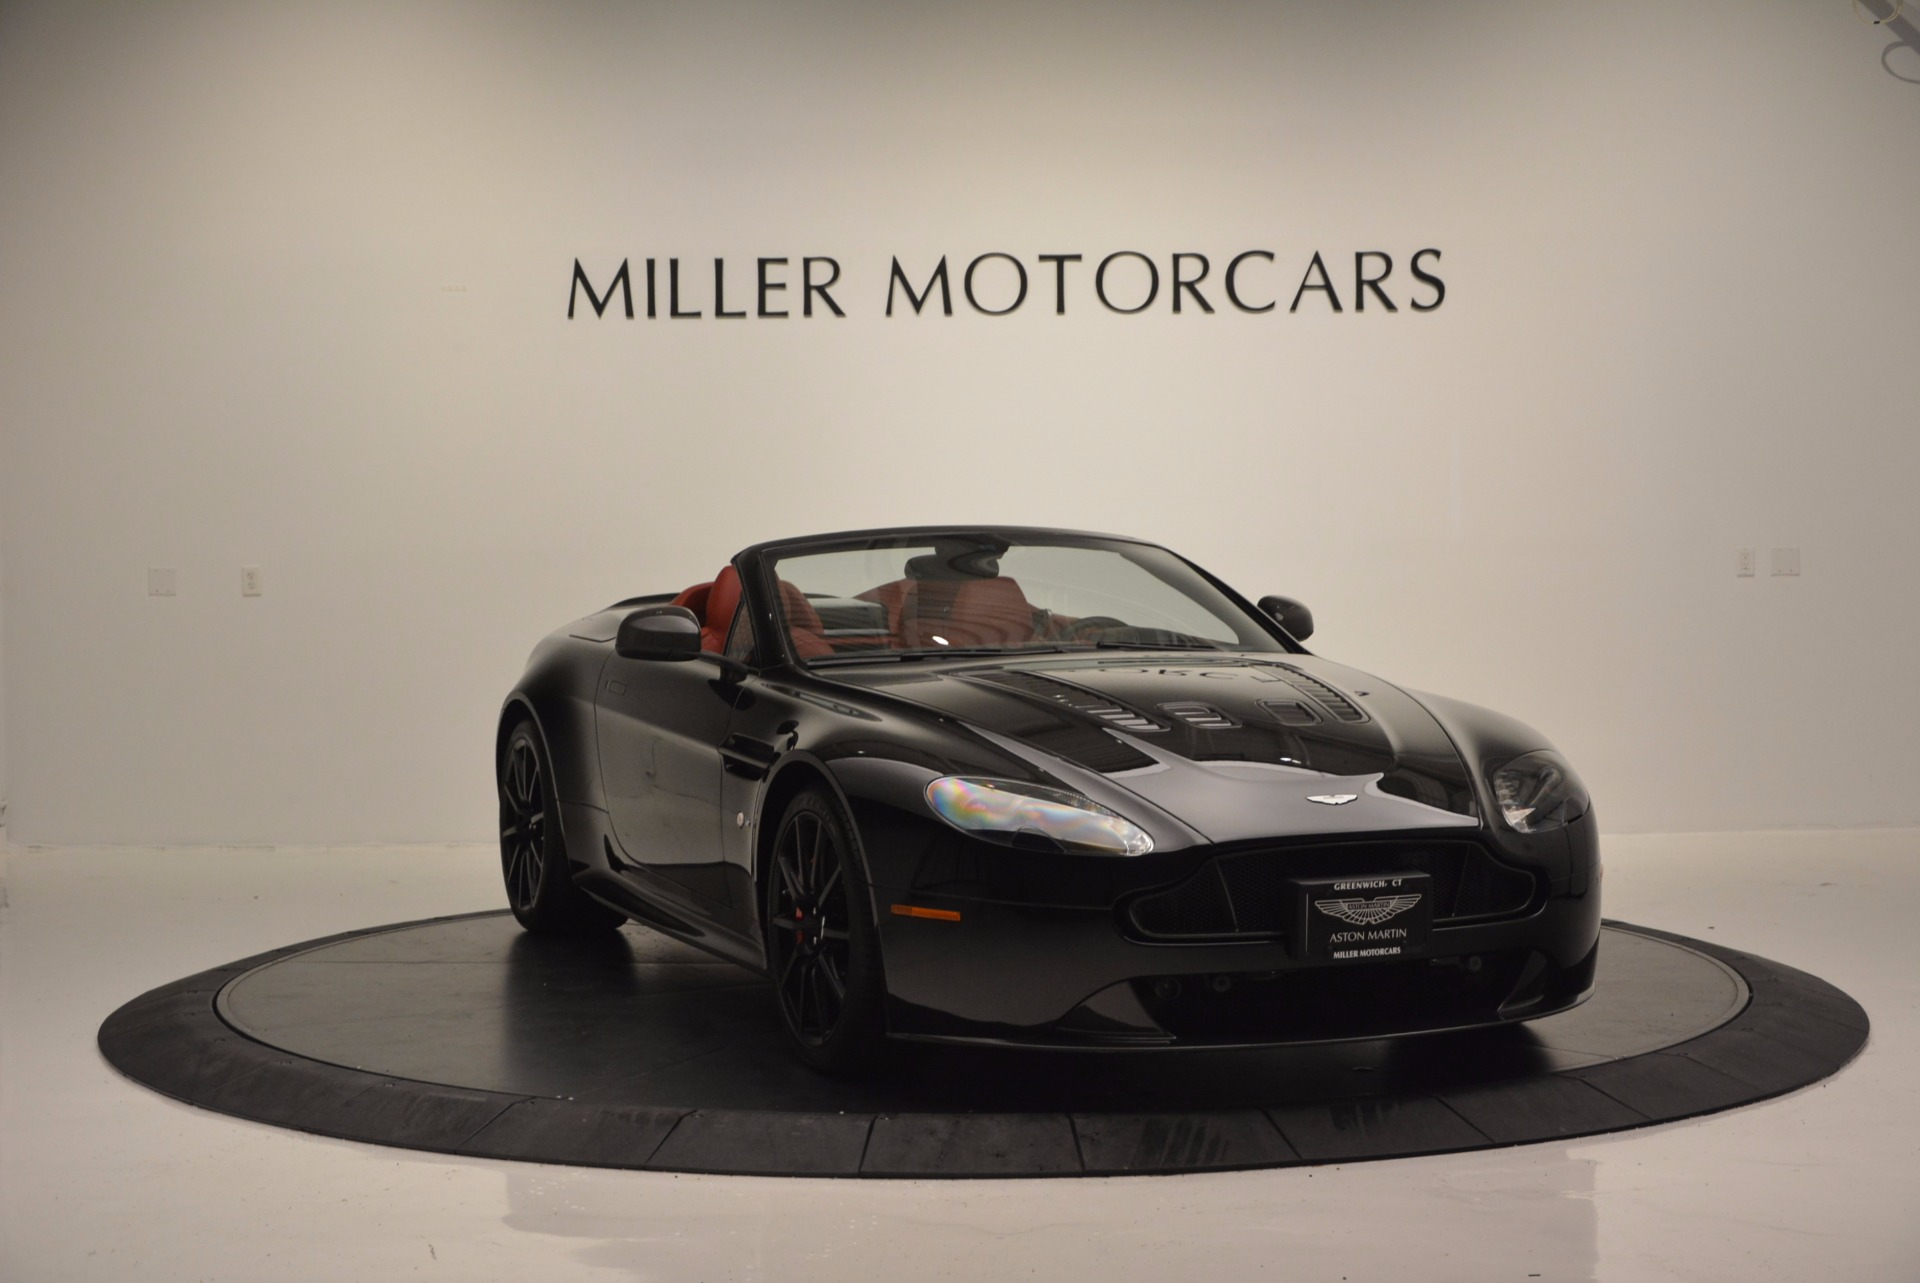 Used 2015 Aston Martin V12 Vantage S Roadster For Sale In Westport, CT 1335_p11